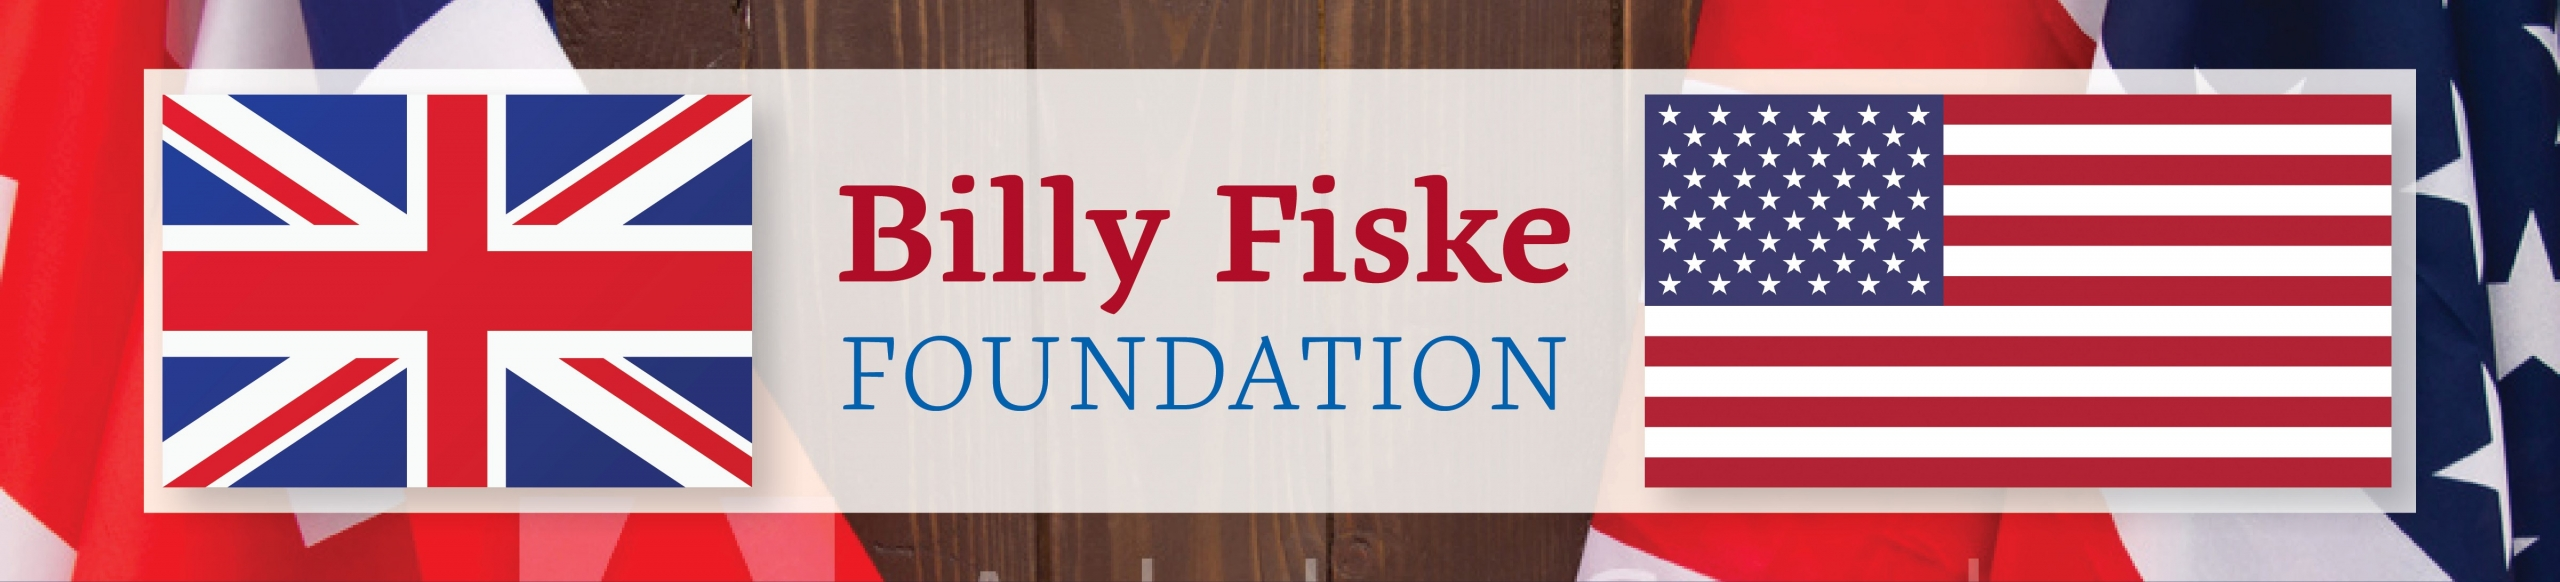 Billy Fiske Foundation